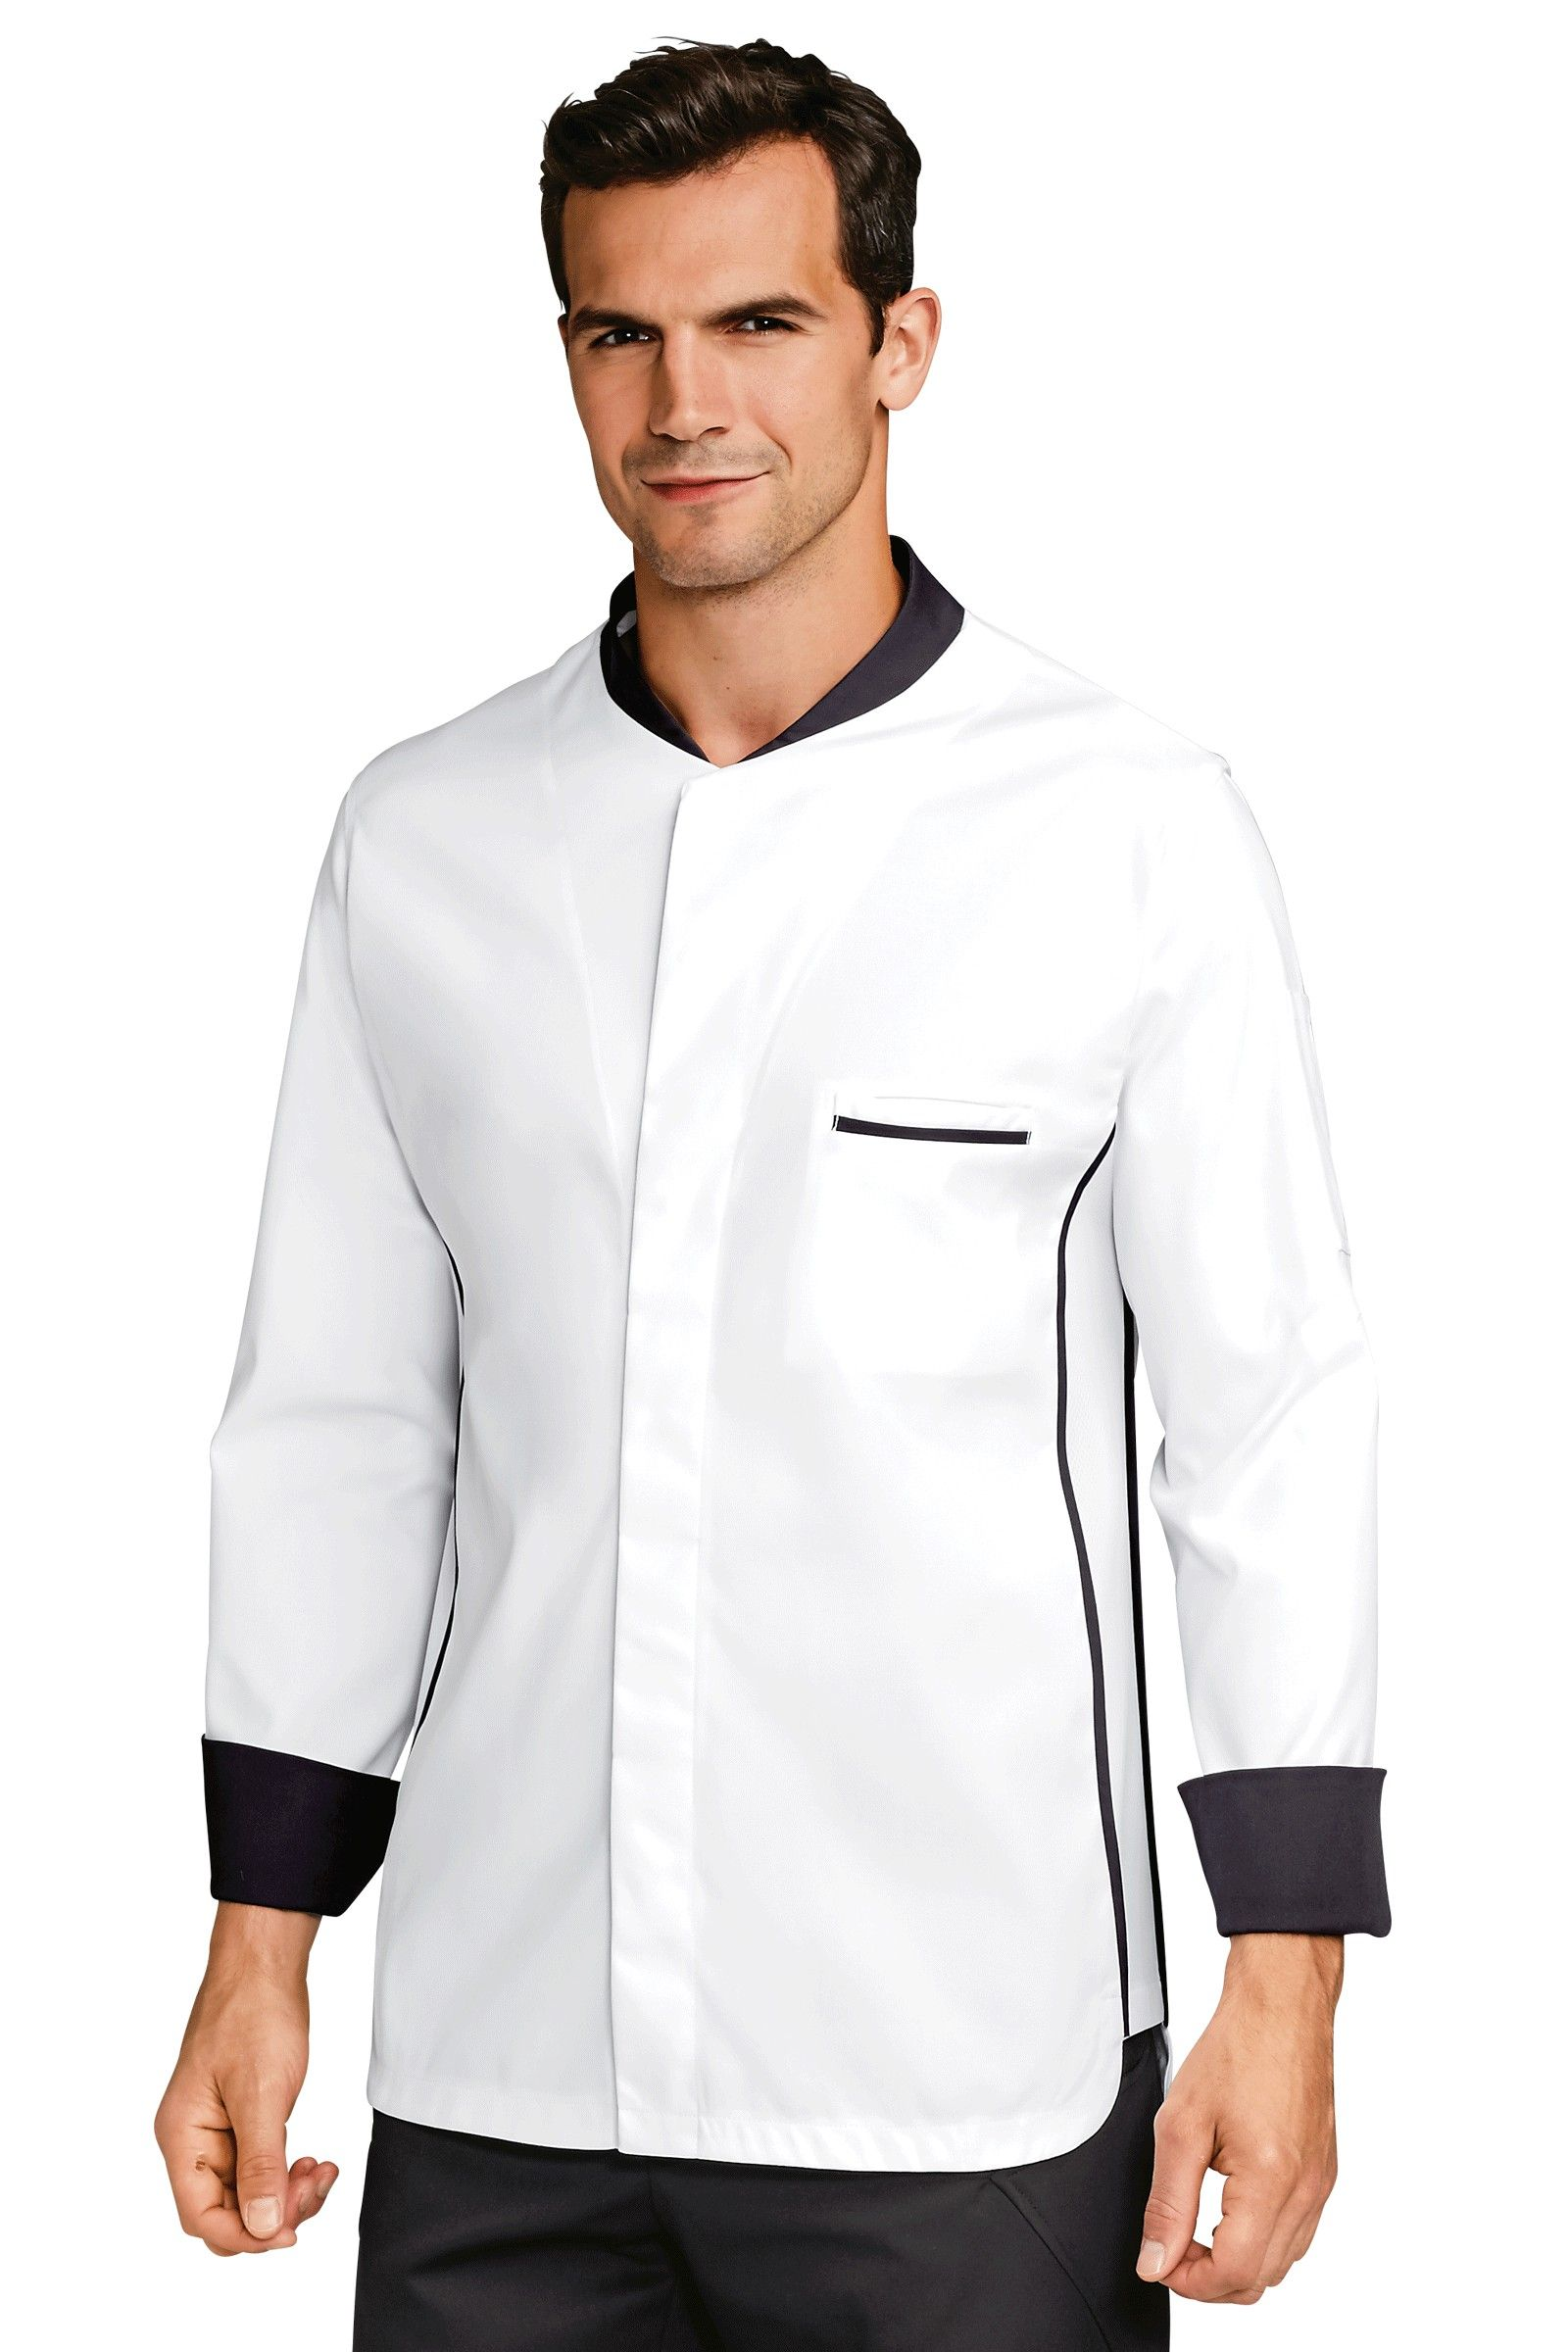 Chef's jacket with constrasting trimmings. 1 chest pocket